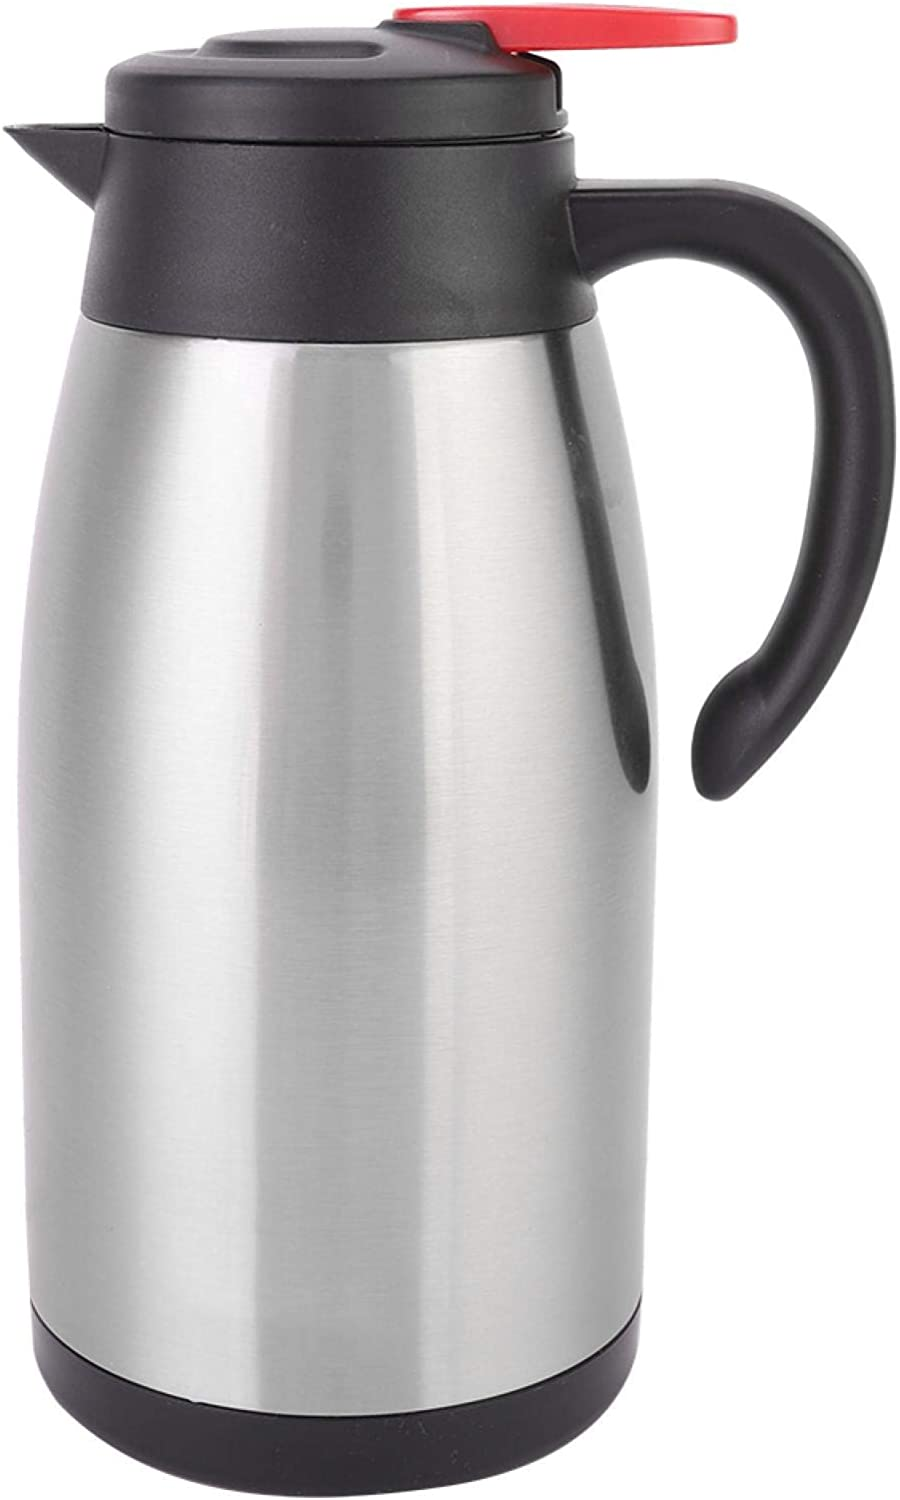 latest Finally popular brand Thermal Insulated Vacuum Coffee Jug Milk Pot for Househol 2000ml